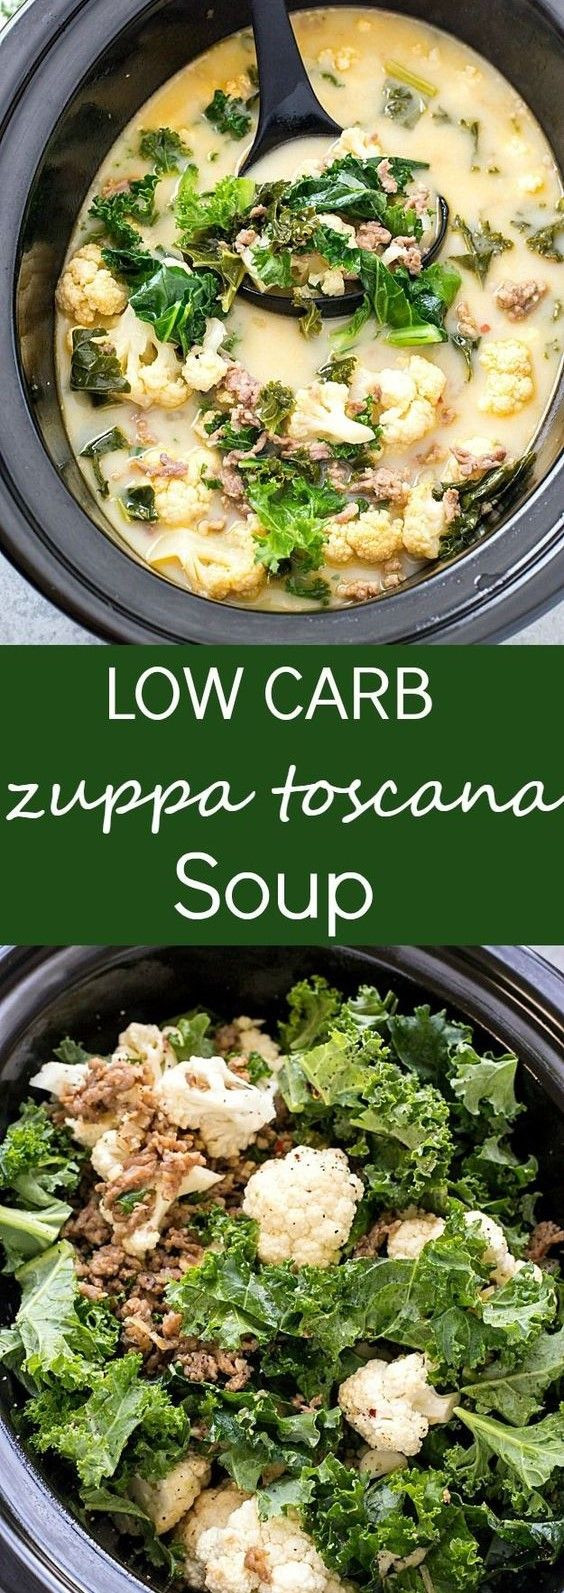 Slow Cooker Keto Zuppa Toscana  Slow Cooker Low Carb Zuppa Toscana Soup recipe food